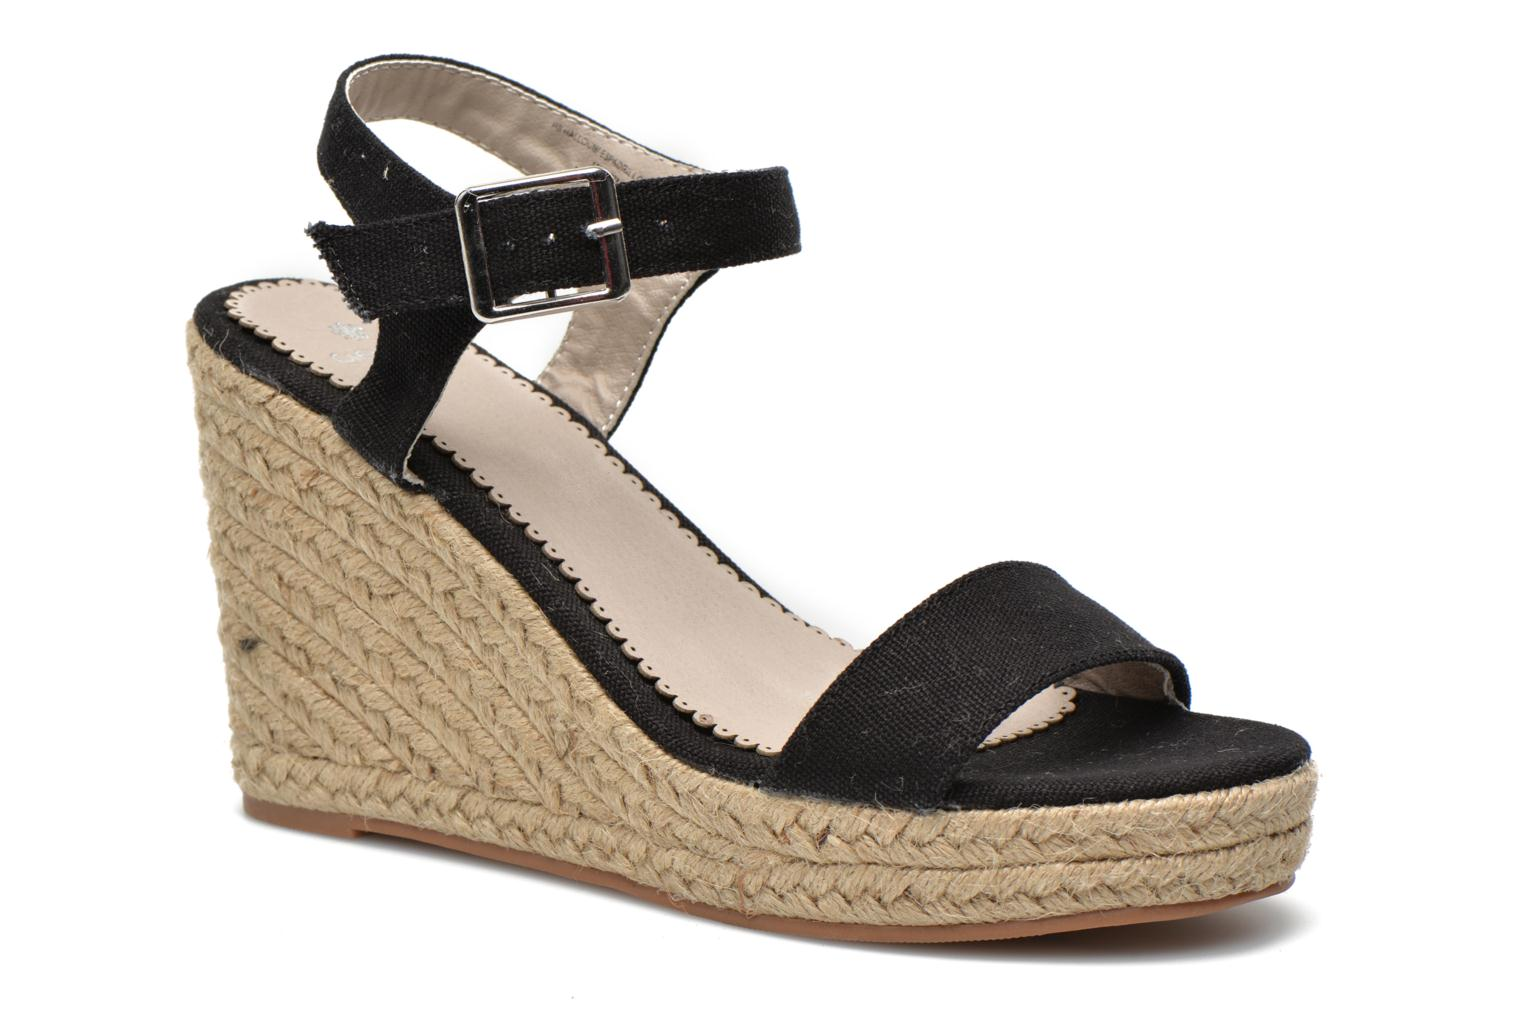 Halloumi espadrillos by Pieces